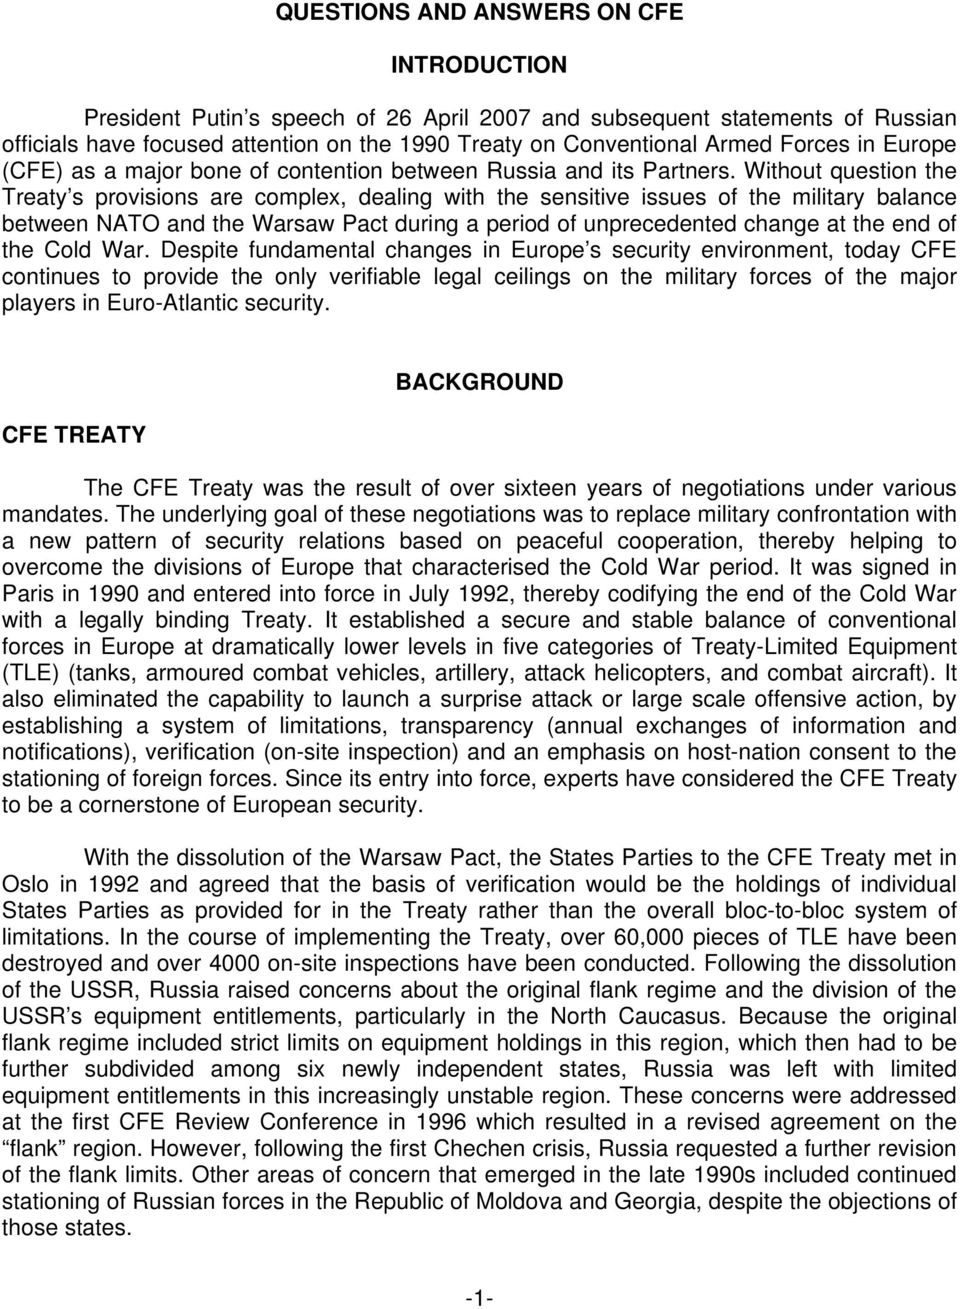 Without question the Treaty s provisions are complex, dealing with the sensitive issues of the military balance between NATO and the Warsaw Pact during a period of unprecedented change at the end of